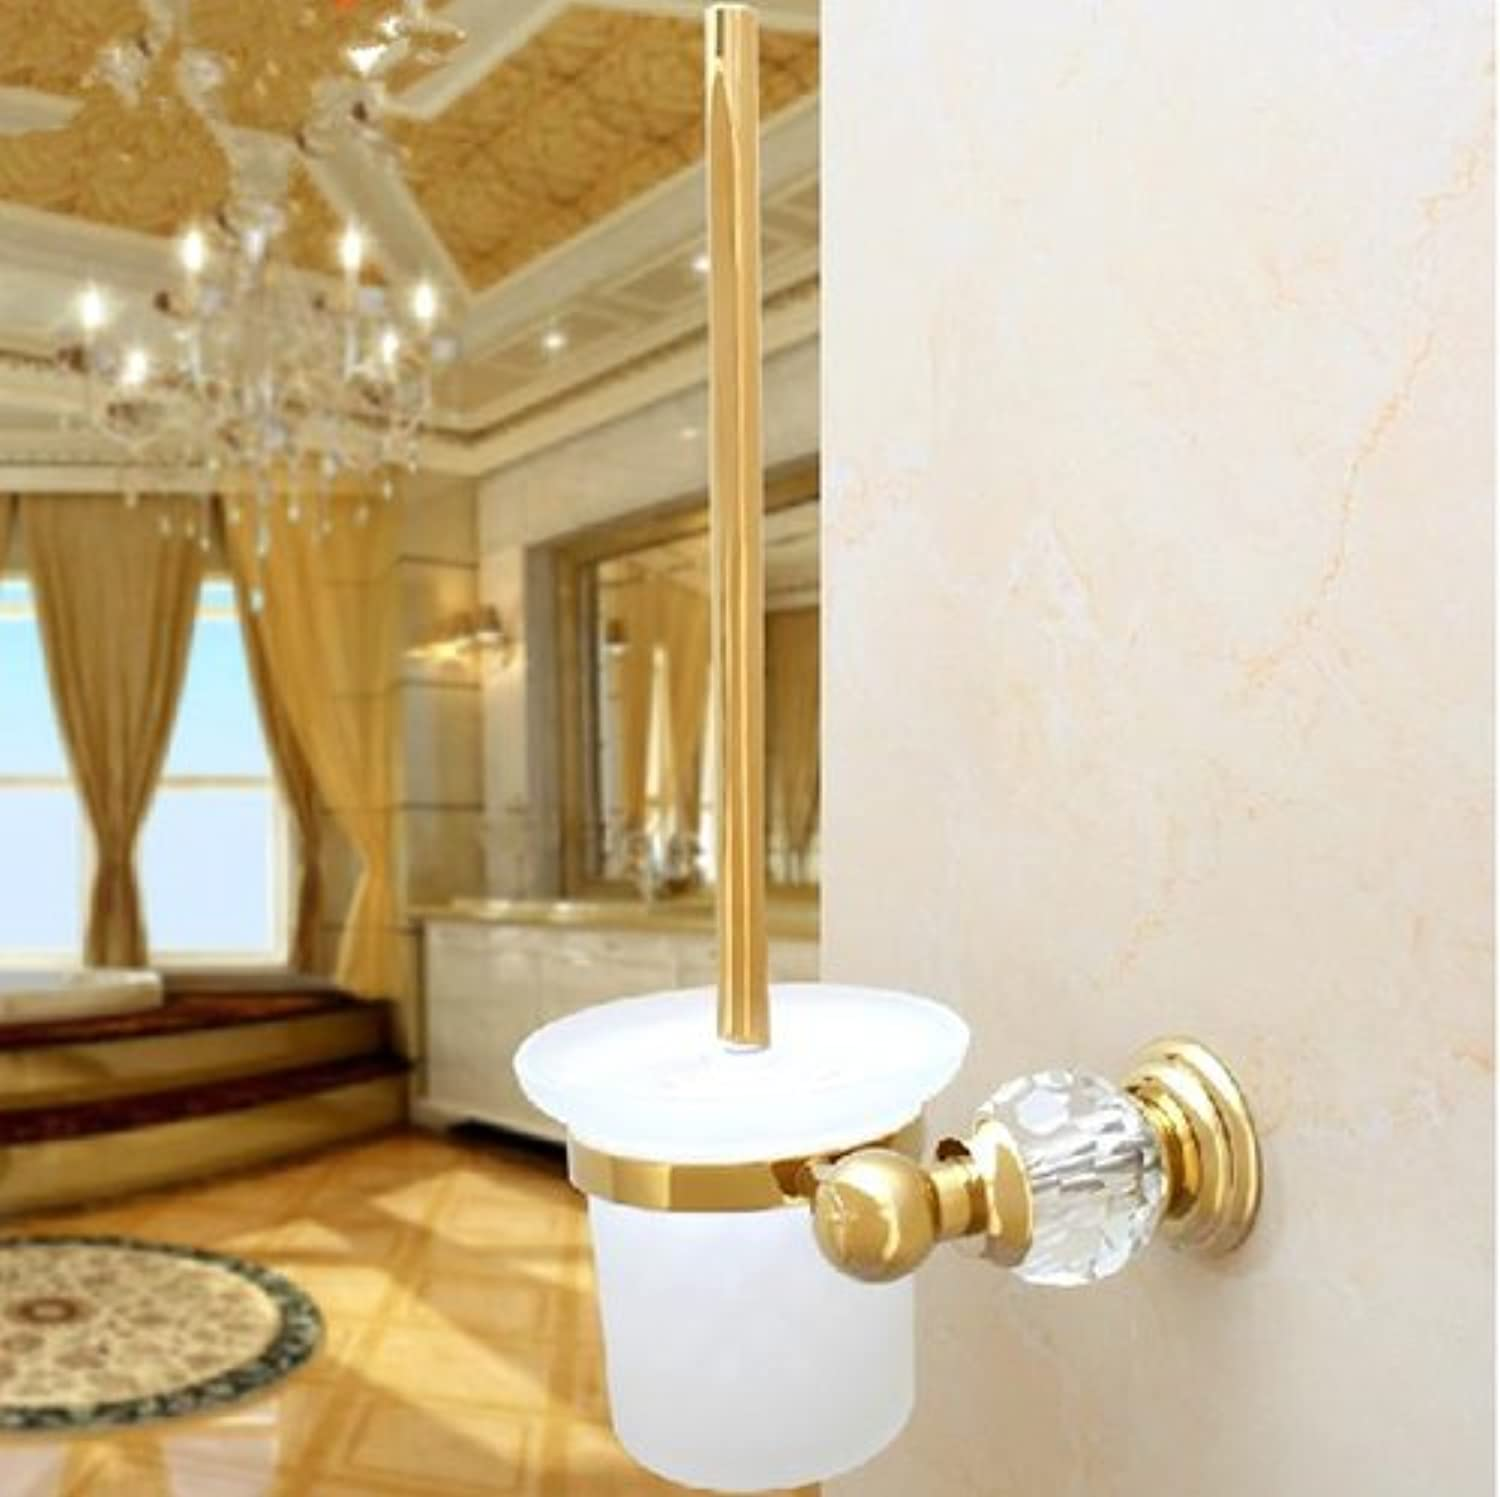 TACCY Bathroom Luxury Toilet Brush with Frosted Glass Cup and Brass Holder in Polished gold Finish  MT22A